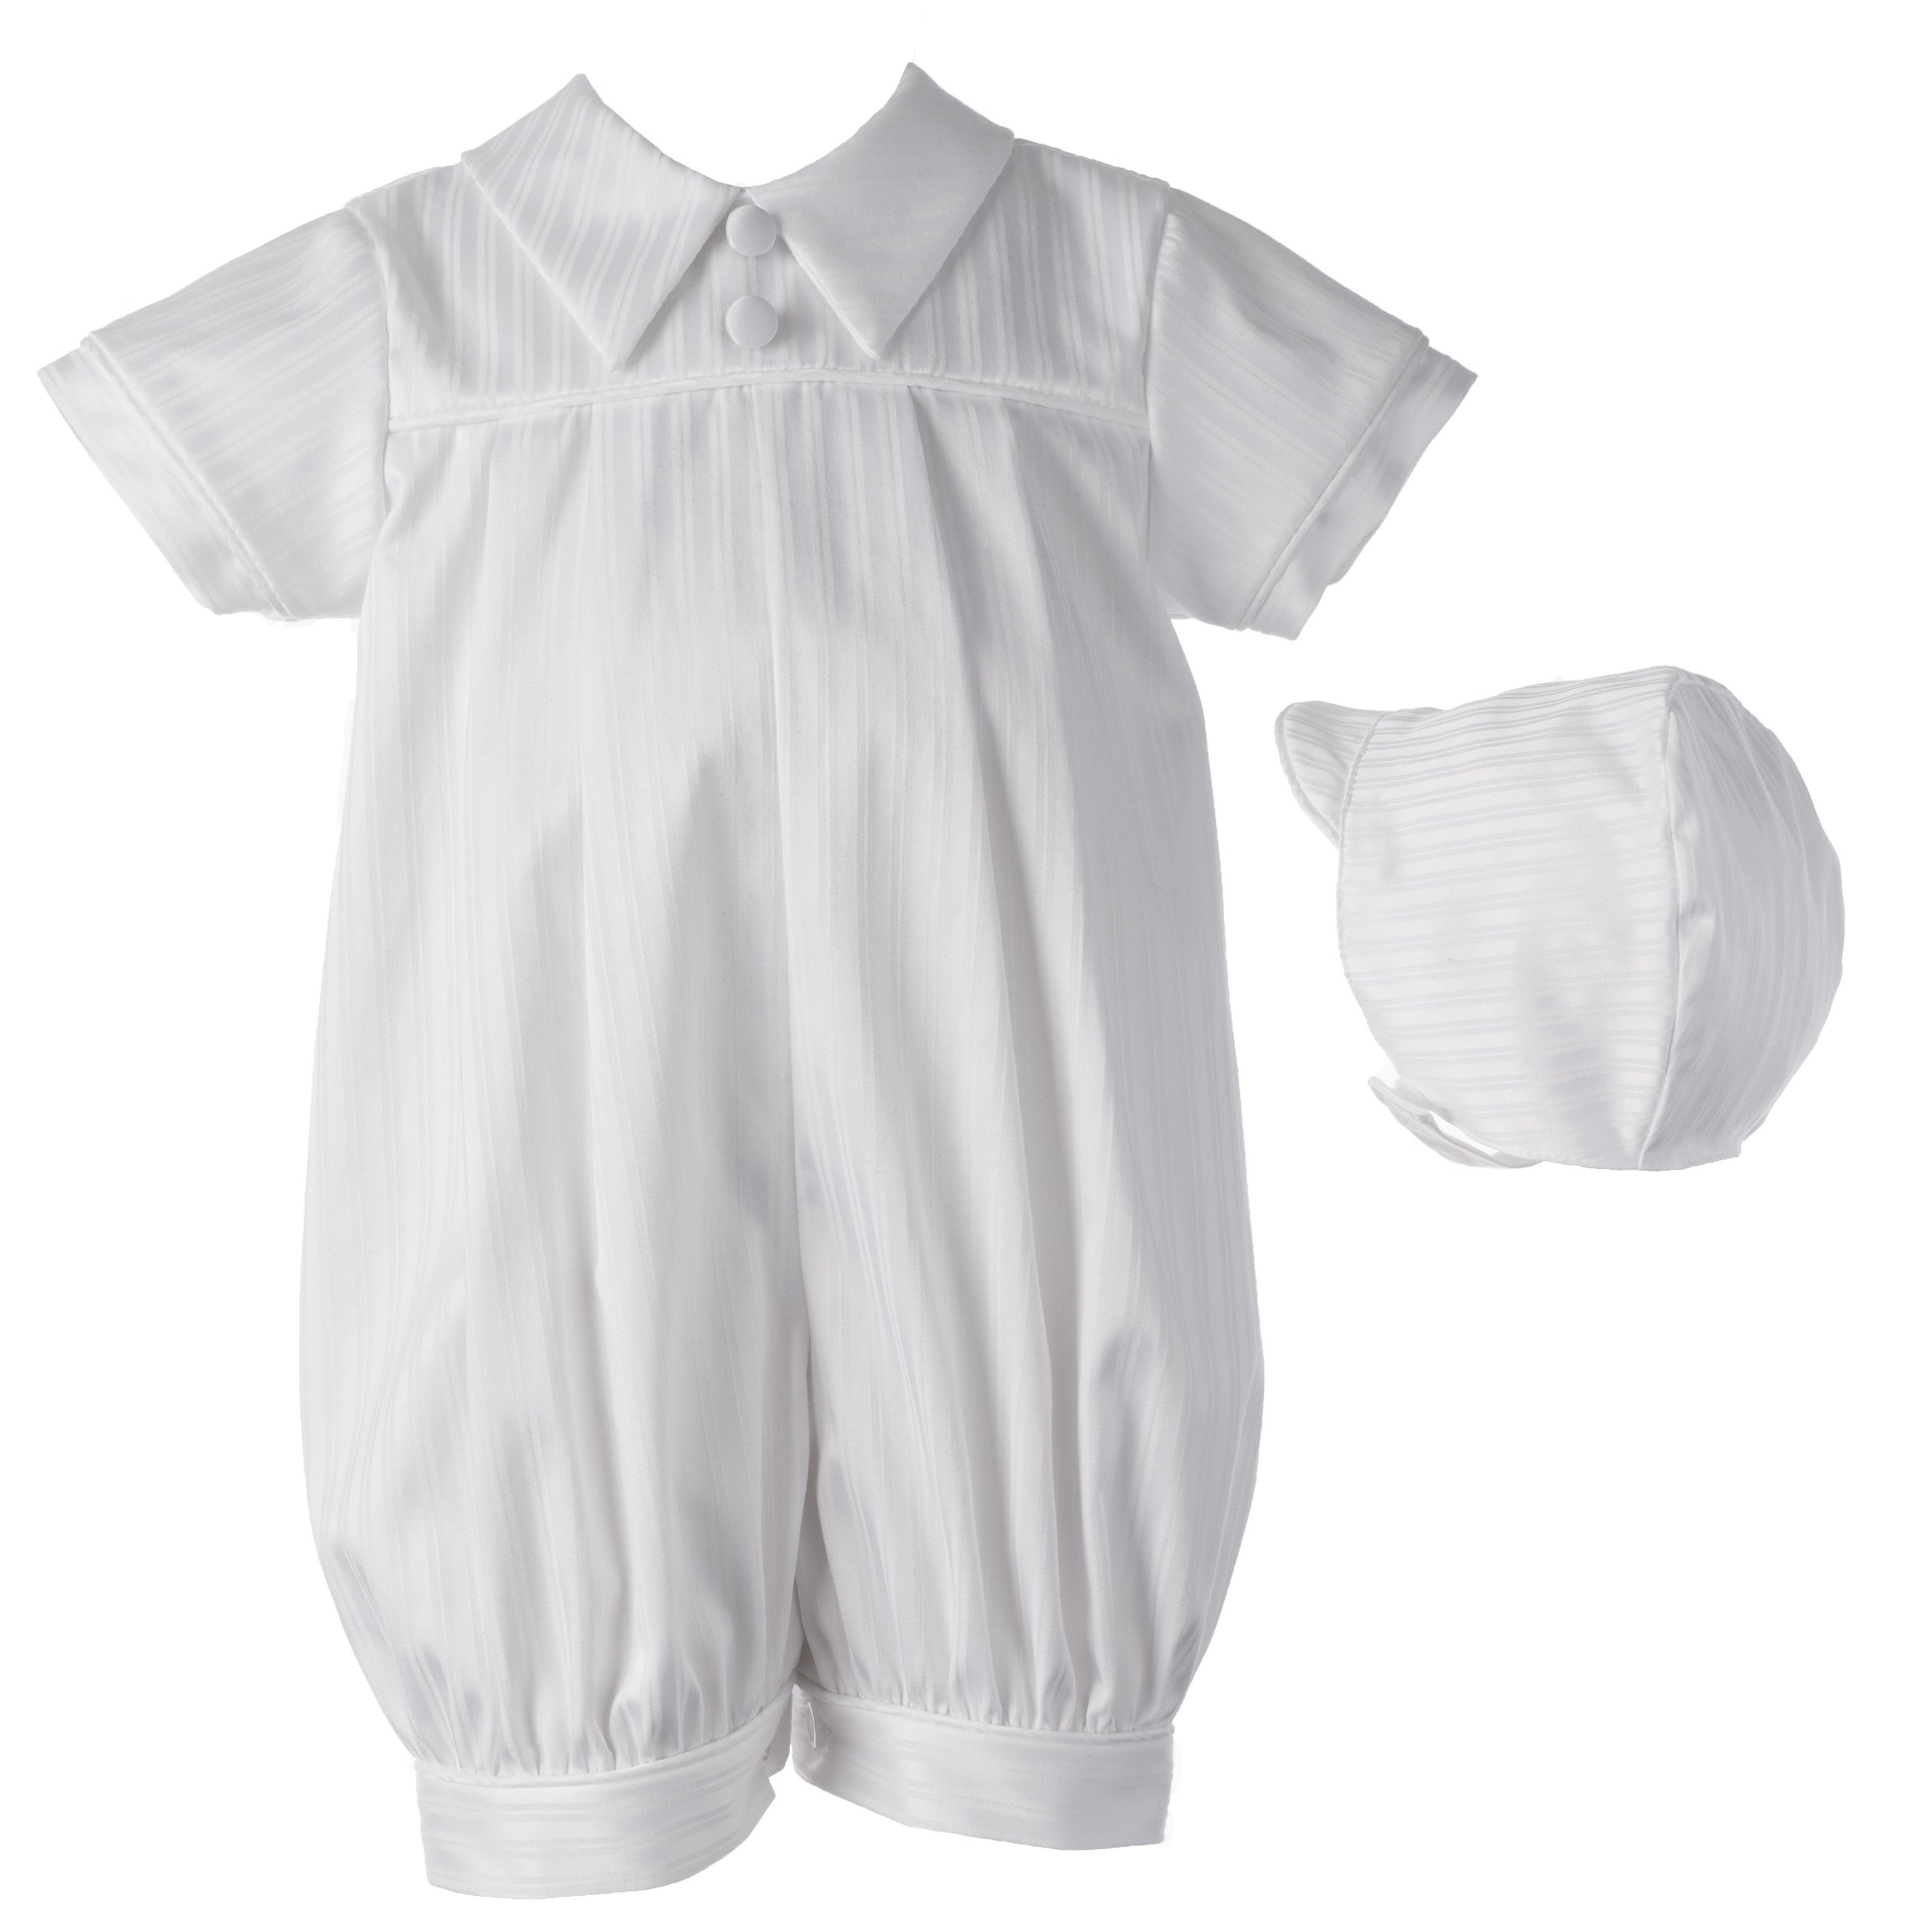 Lauren Madison Baby-Boys Newborn Christening Baptism Infant Special Occasion Satin Striped Cotton Short Pleated Romper with Shirt Collar, White, 9-12 Months